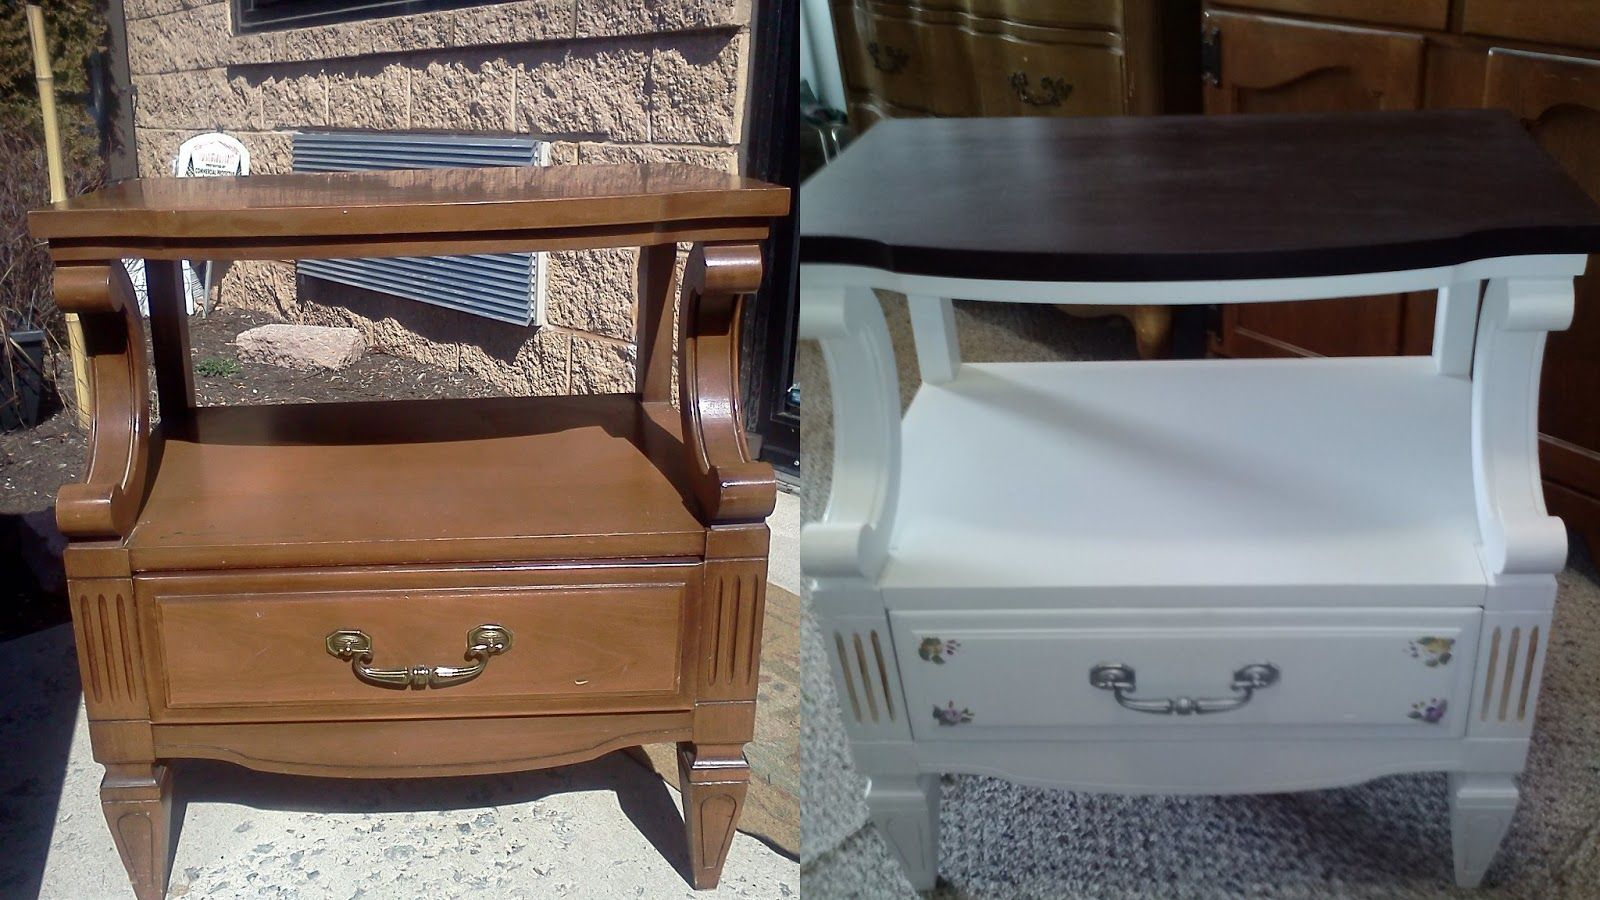 Enjoyable Shabby Chic Furniture Before And After Ruiduwenquan Com Download Free Architecture Designs Terstmadebymaigaardcom